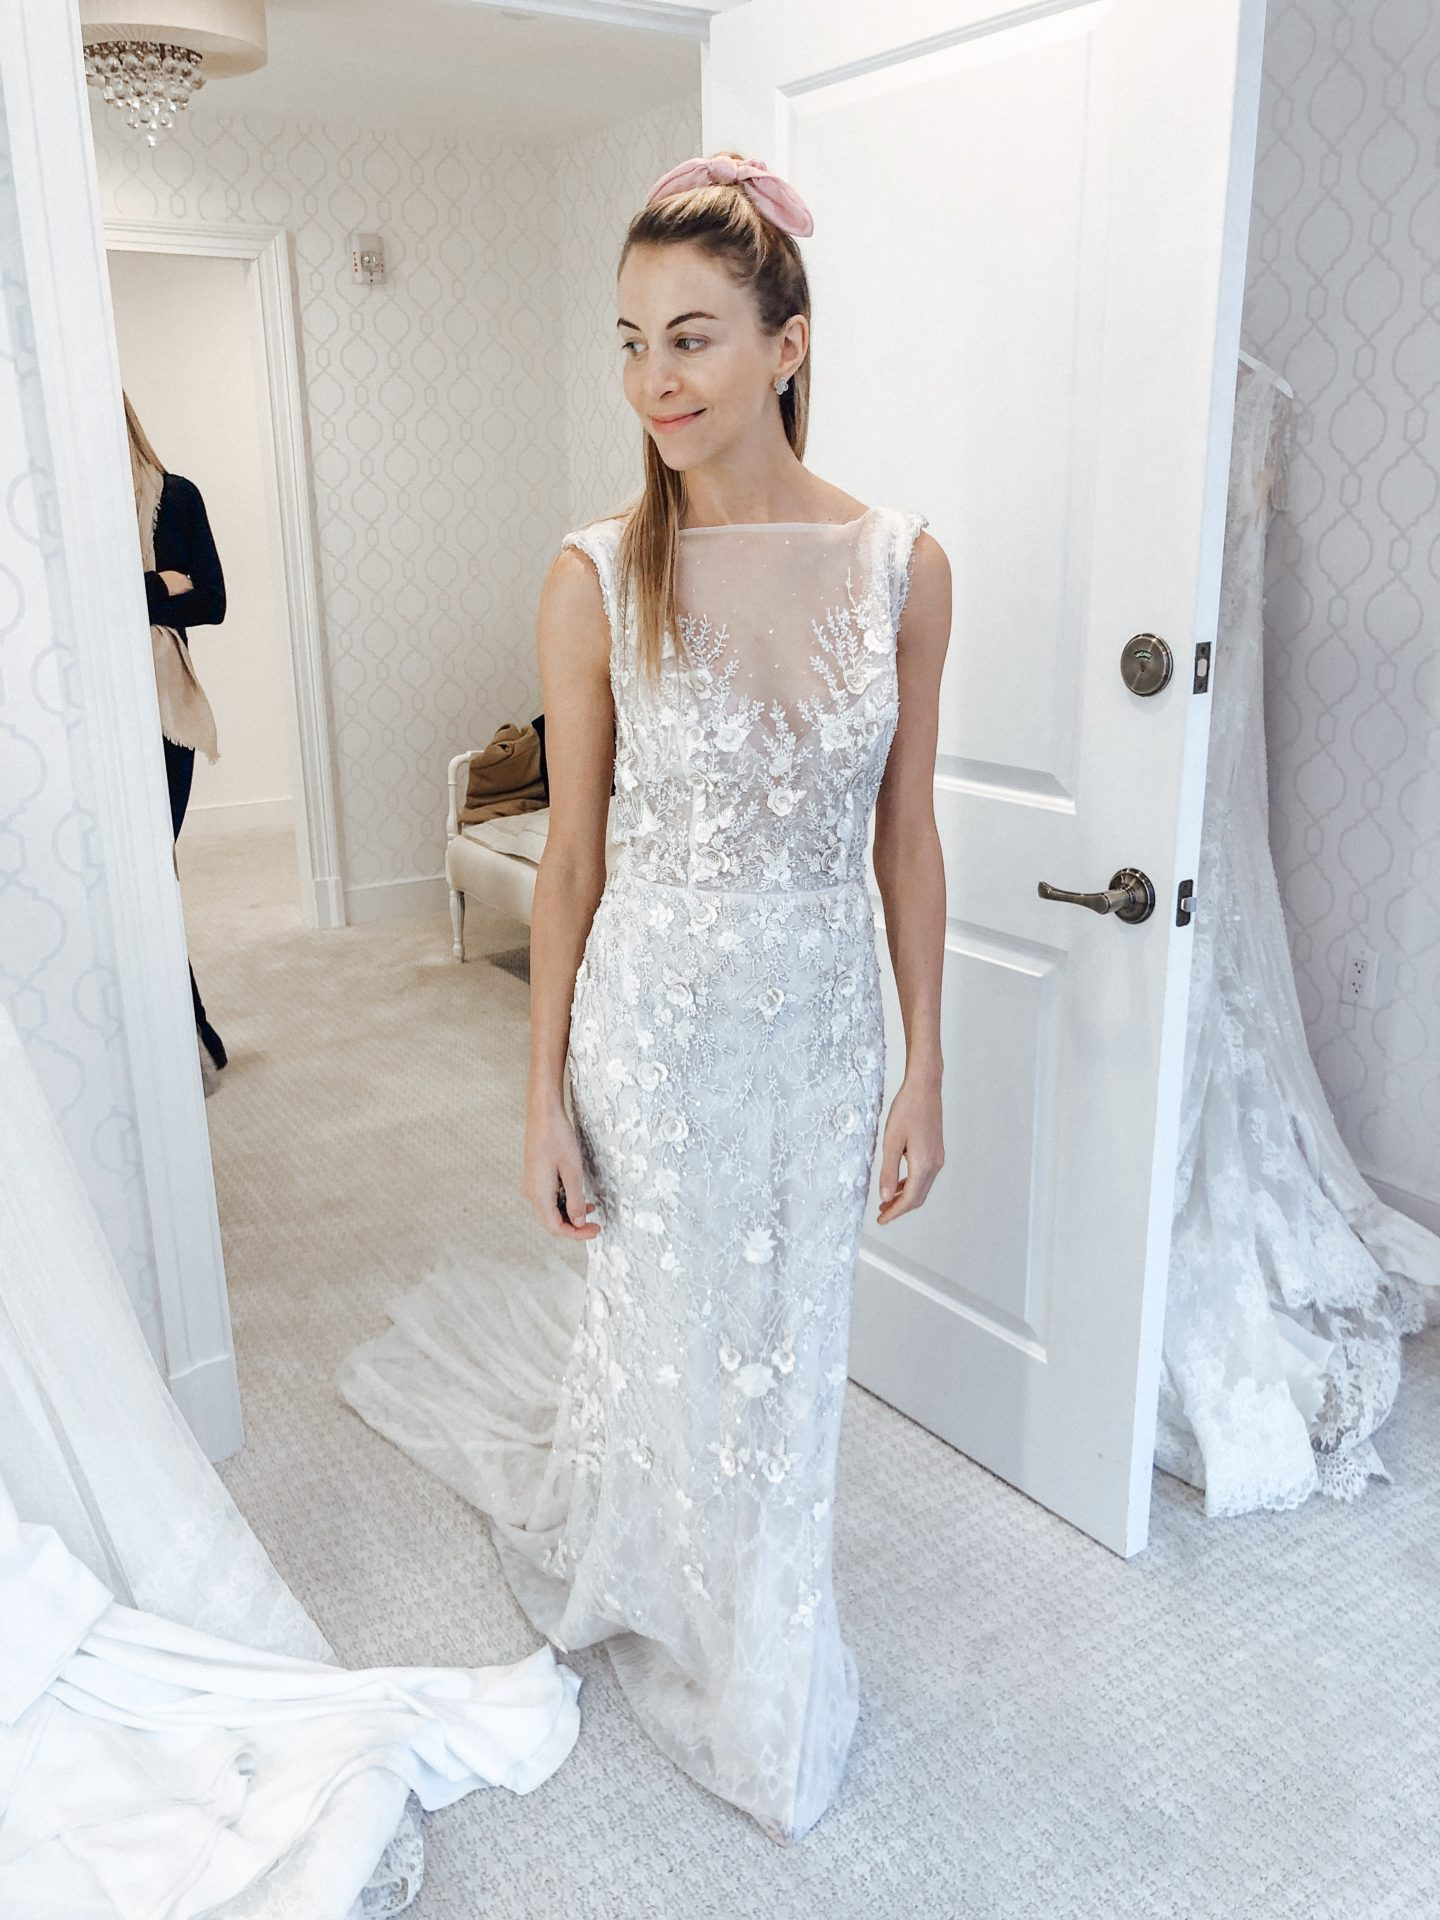 Wedding Dress Shopping Tips A Guide For What I Wish I Knew The